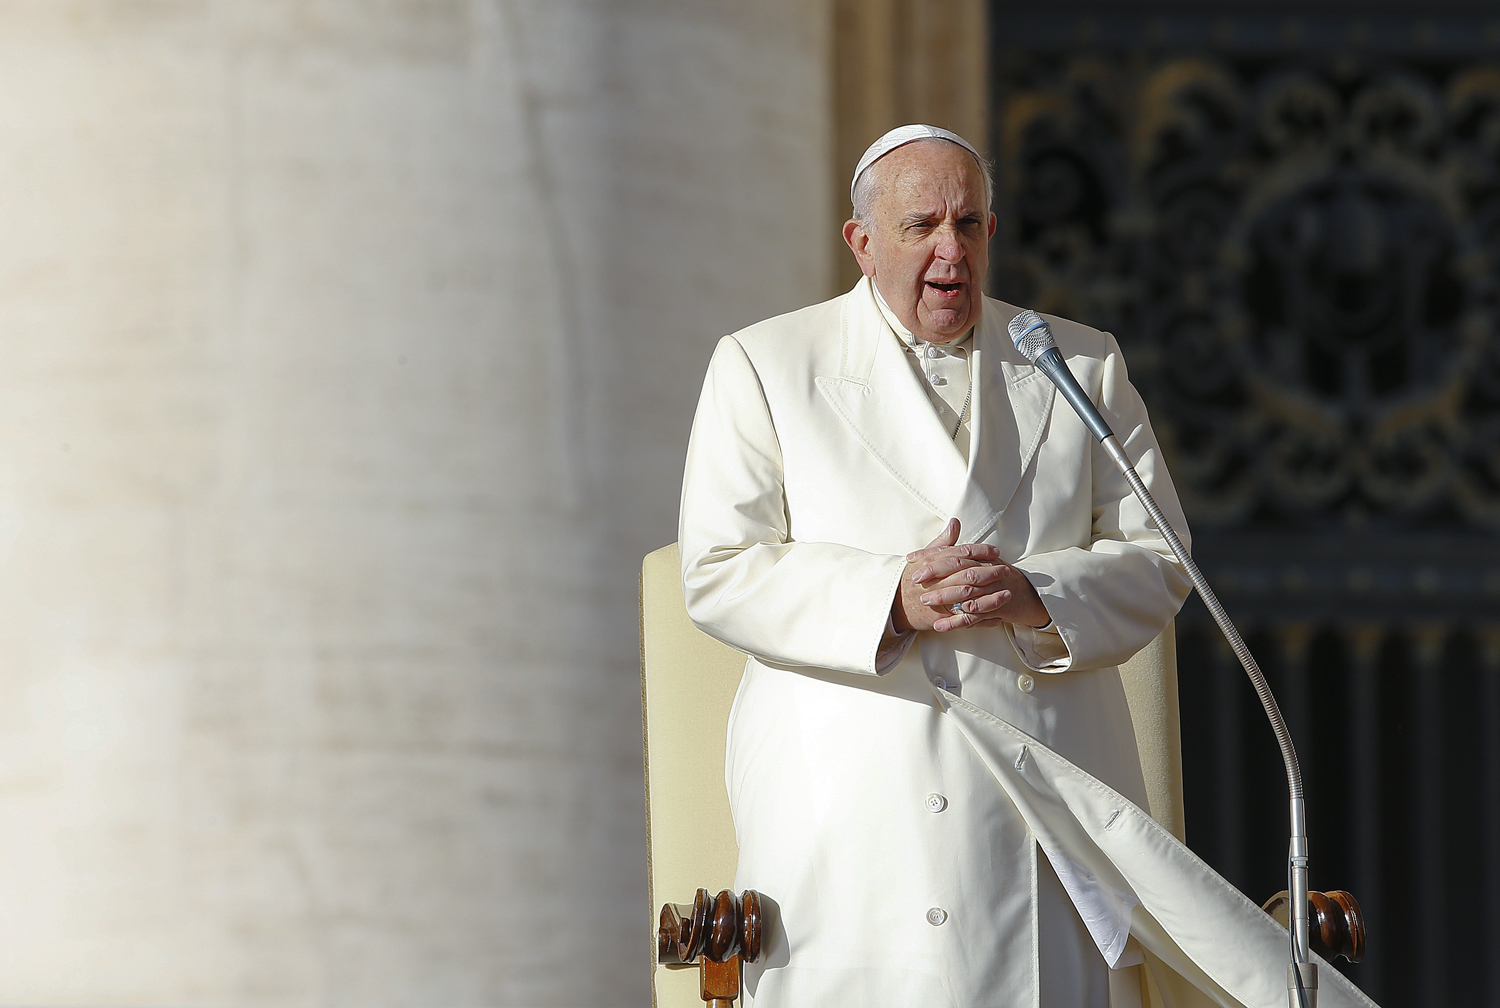 Pope Francis leads his Wednesday general audience in St. Peter's Square at the Vatican on Dec. 10, 2014